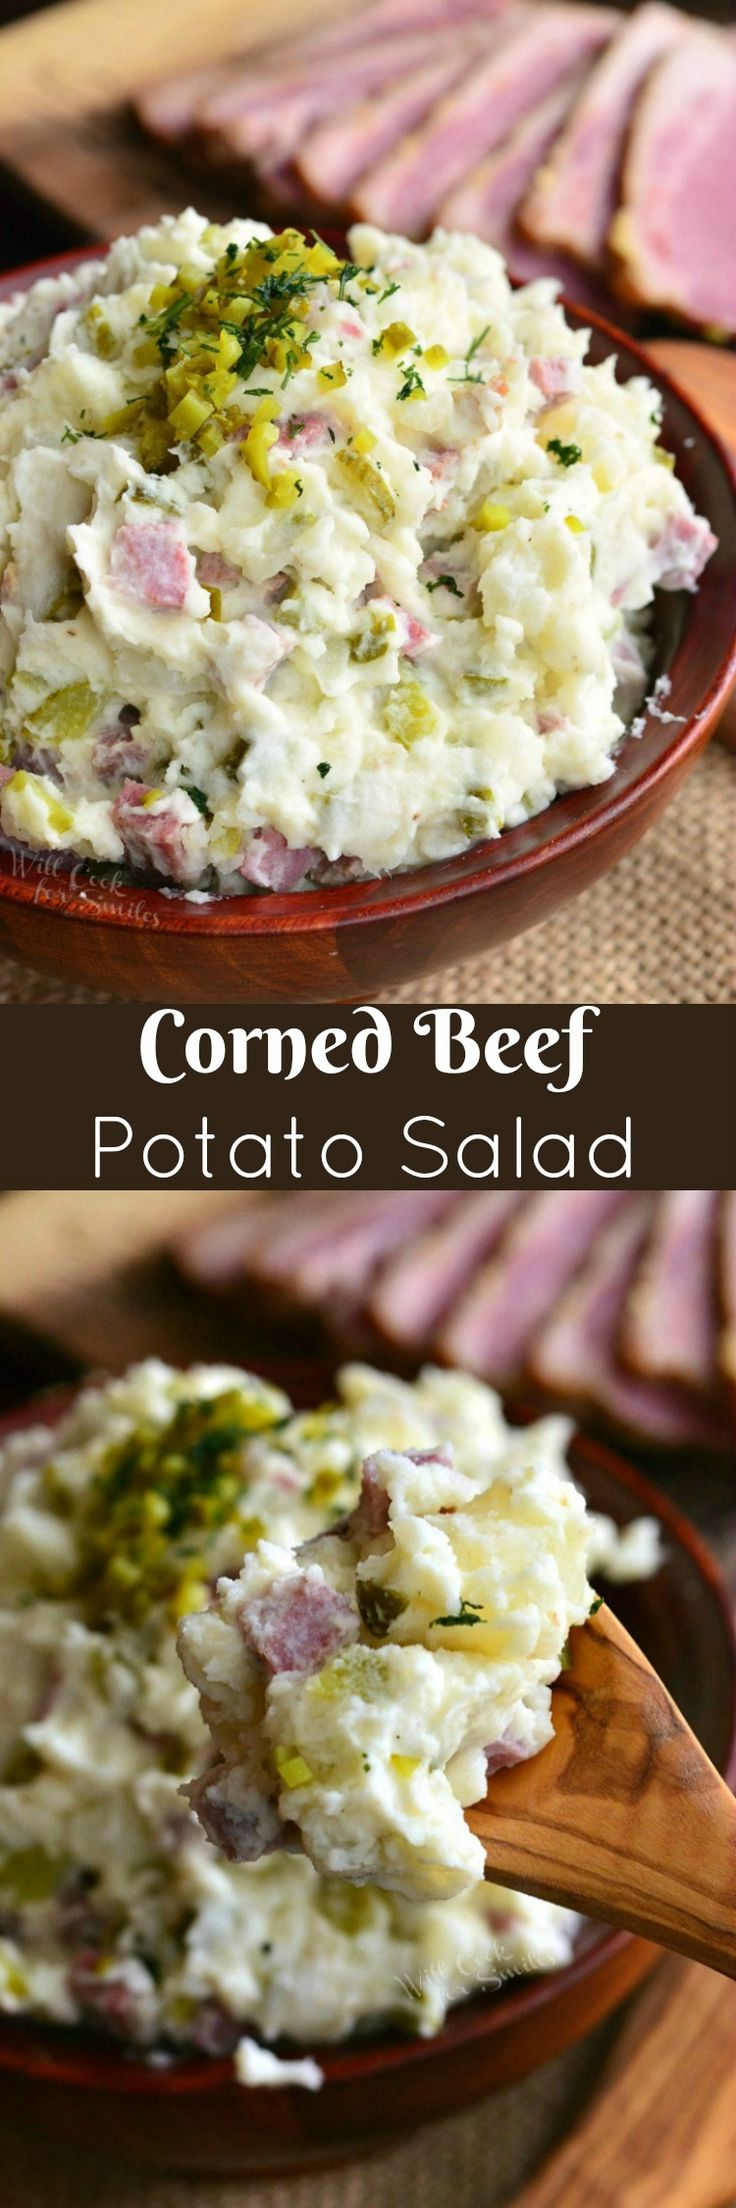 Corned Beef Potato Salad This Delicious Potato Salad Made With Tender Corned Beef Brisket And